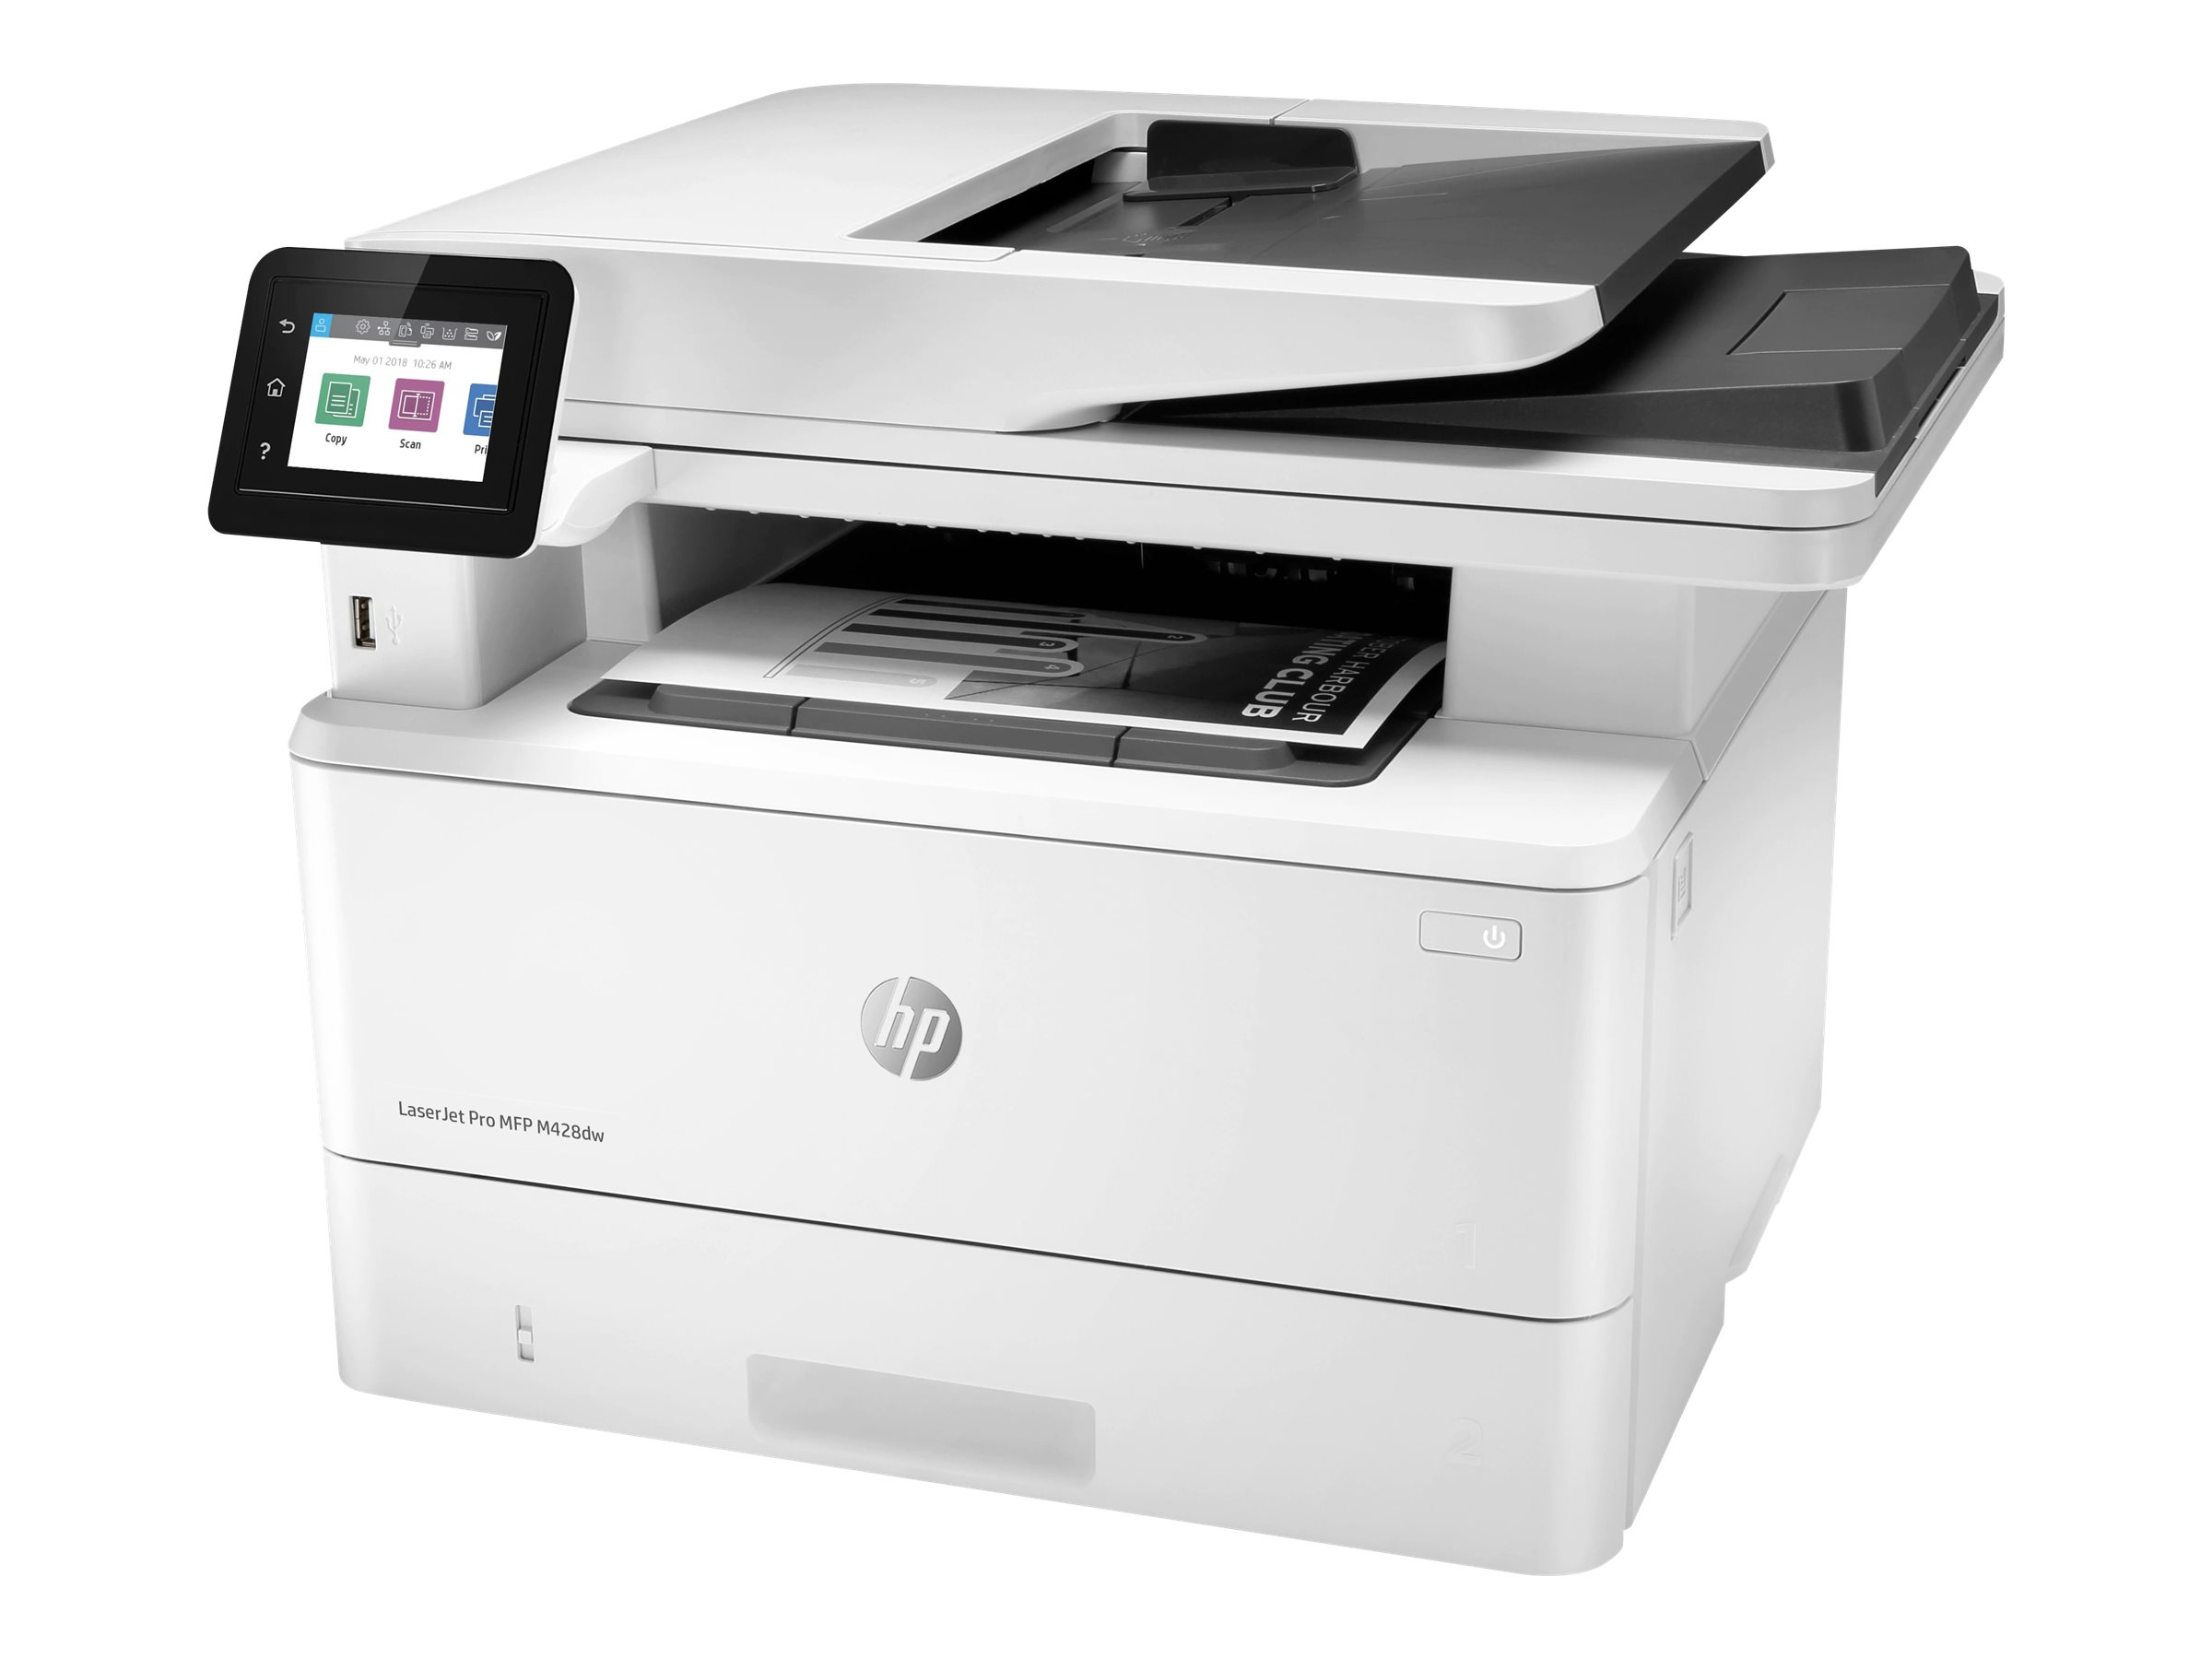 HP LaserJet Pro MFP M428dw - Multifunktionsdrucker - s/w - Laser - Legal (216 x 356 mm) (Original) - A4/Legal (Medien)